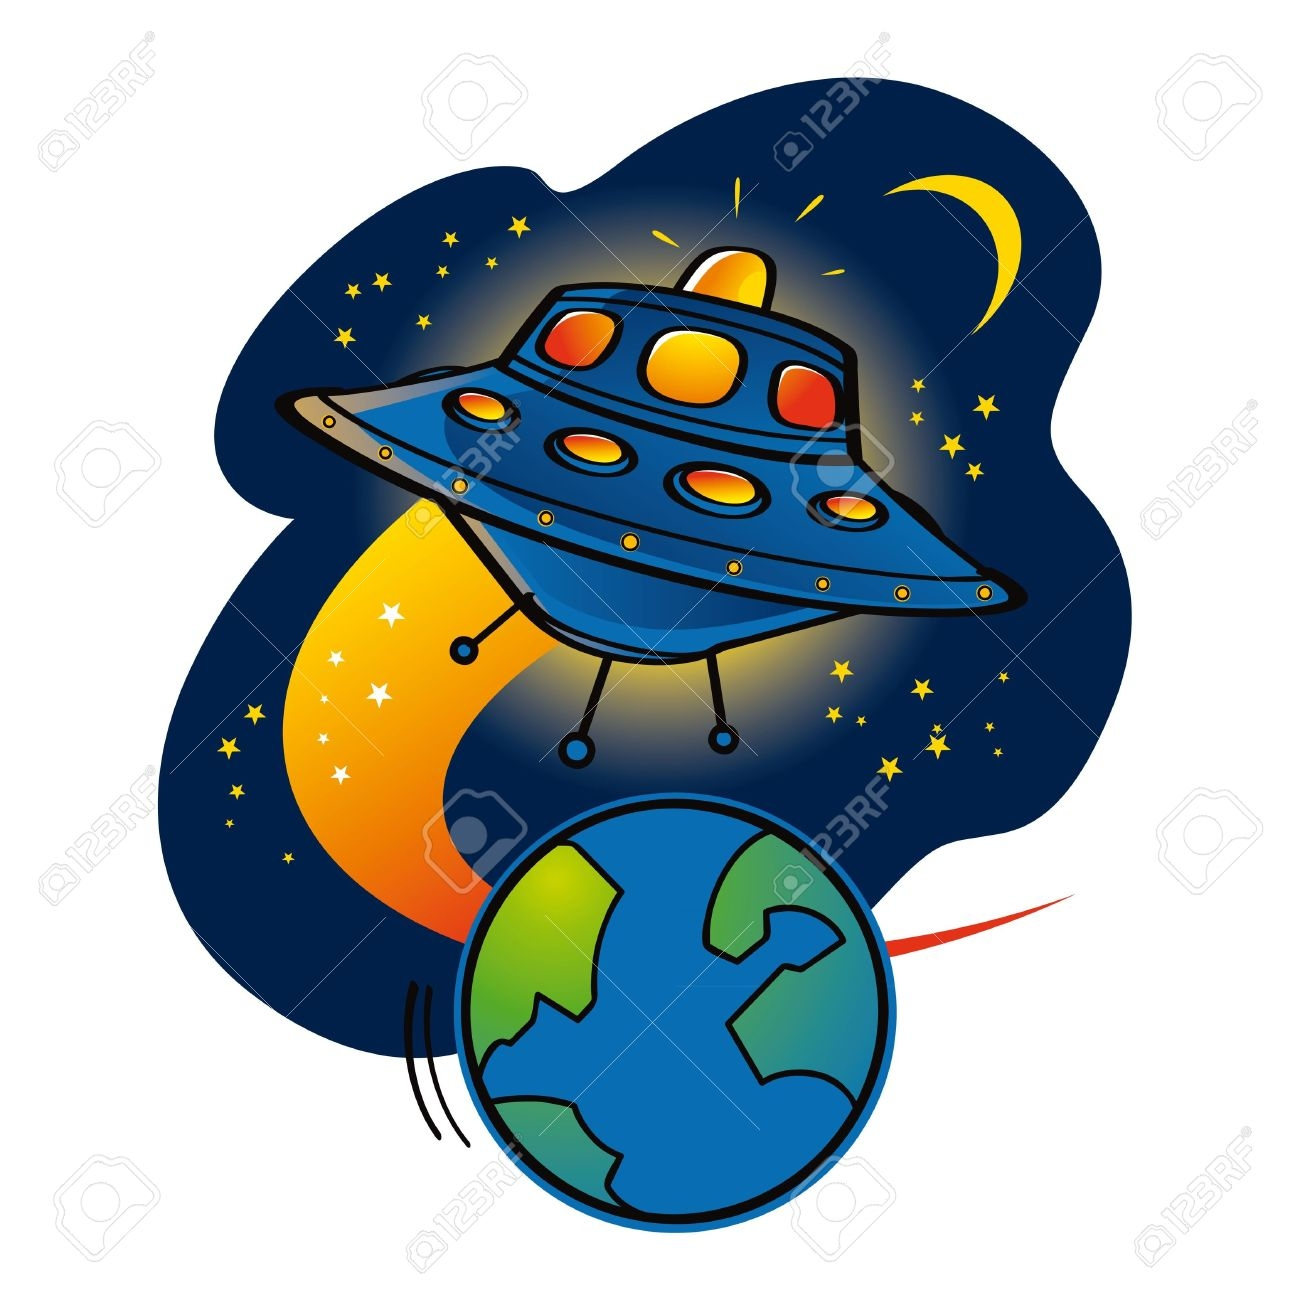 Earth and space science clipart clipartsgram.